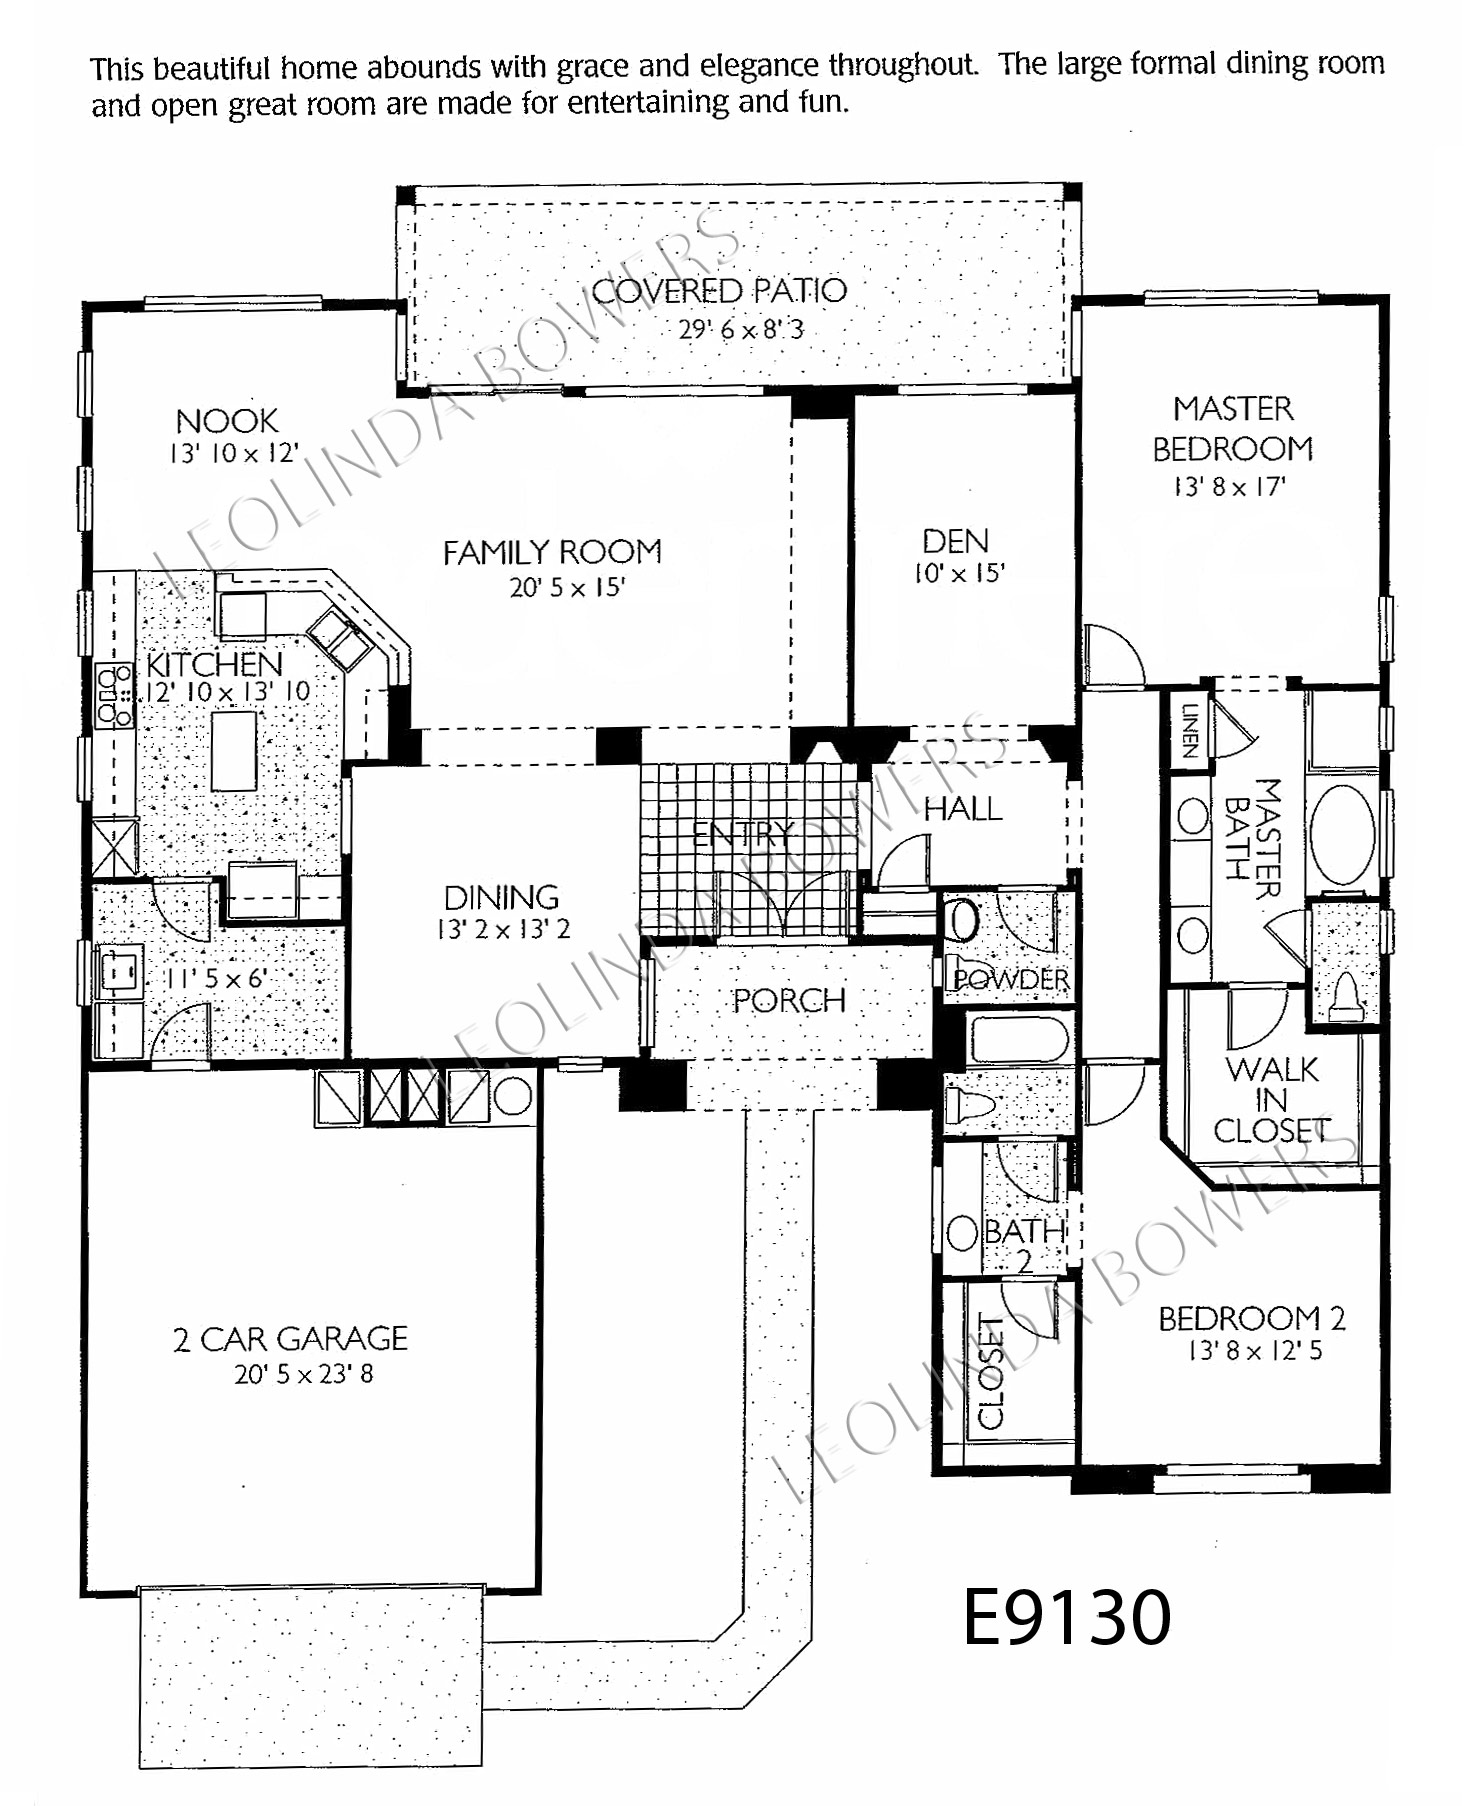 Find Sun City Grand Saguaro Floor Plans Leolinda Bowers